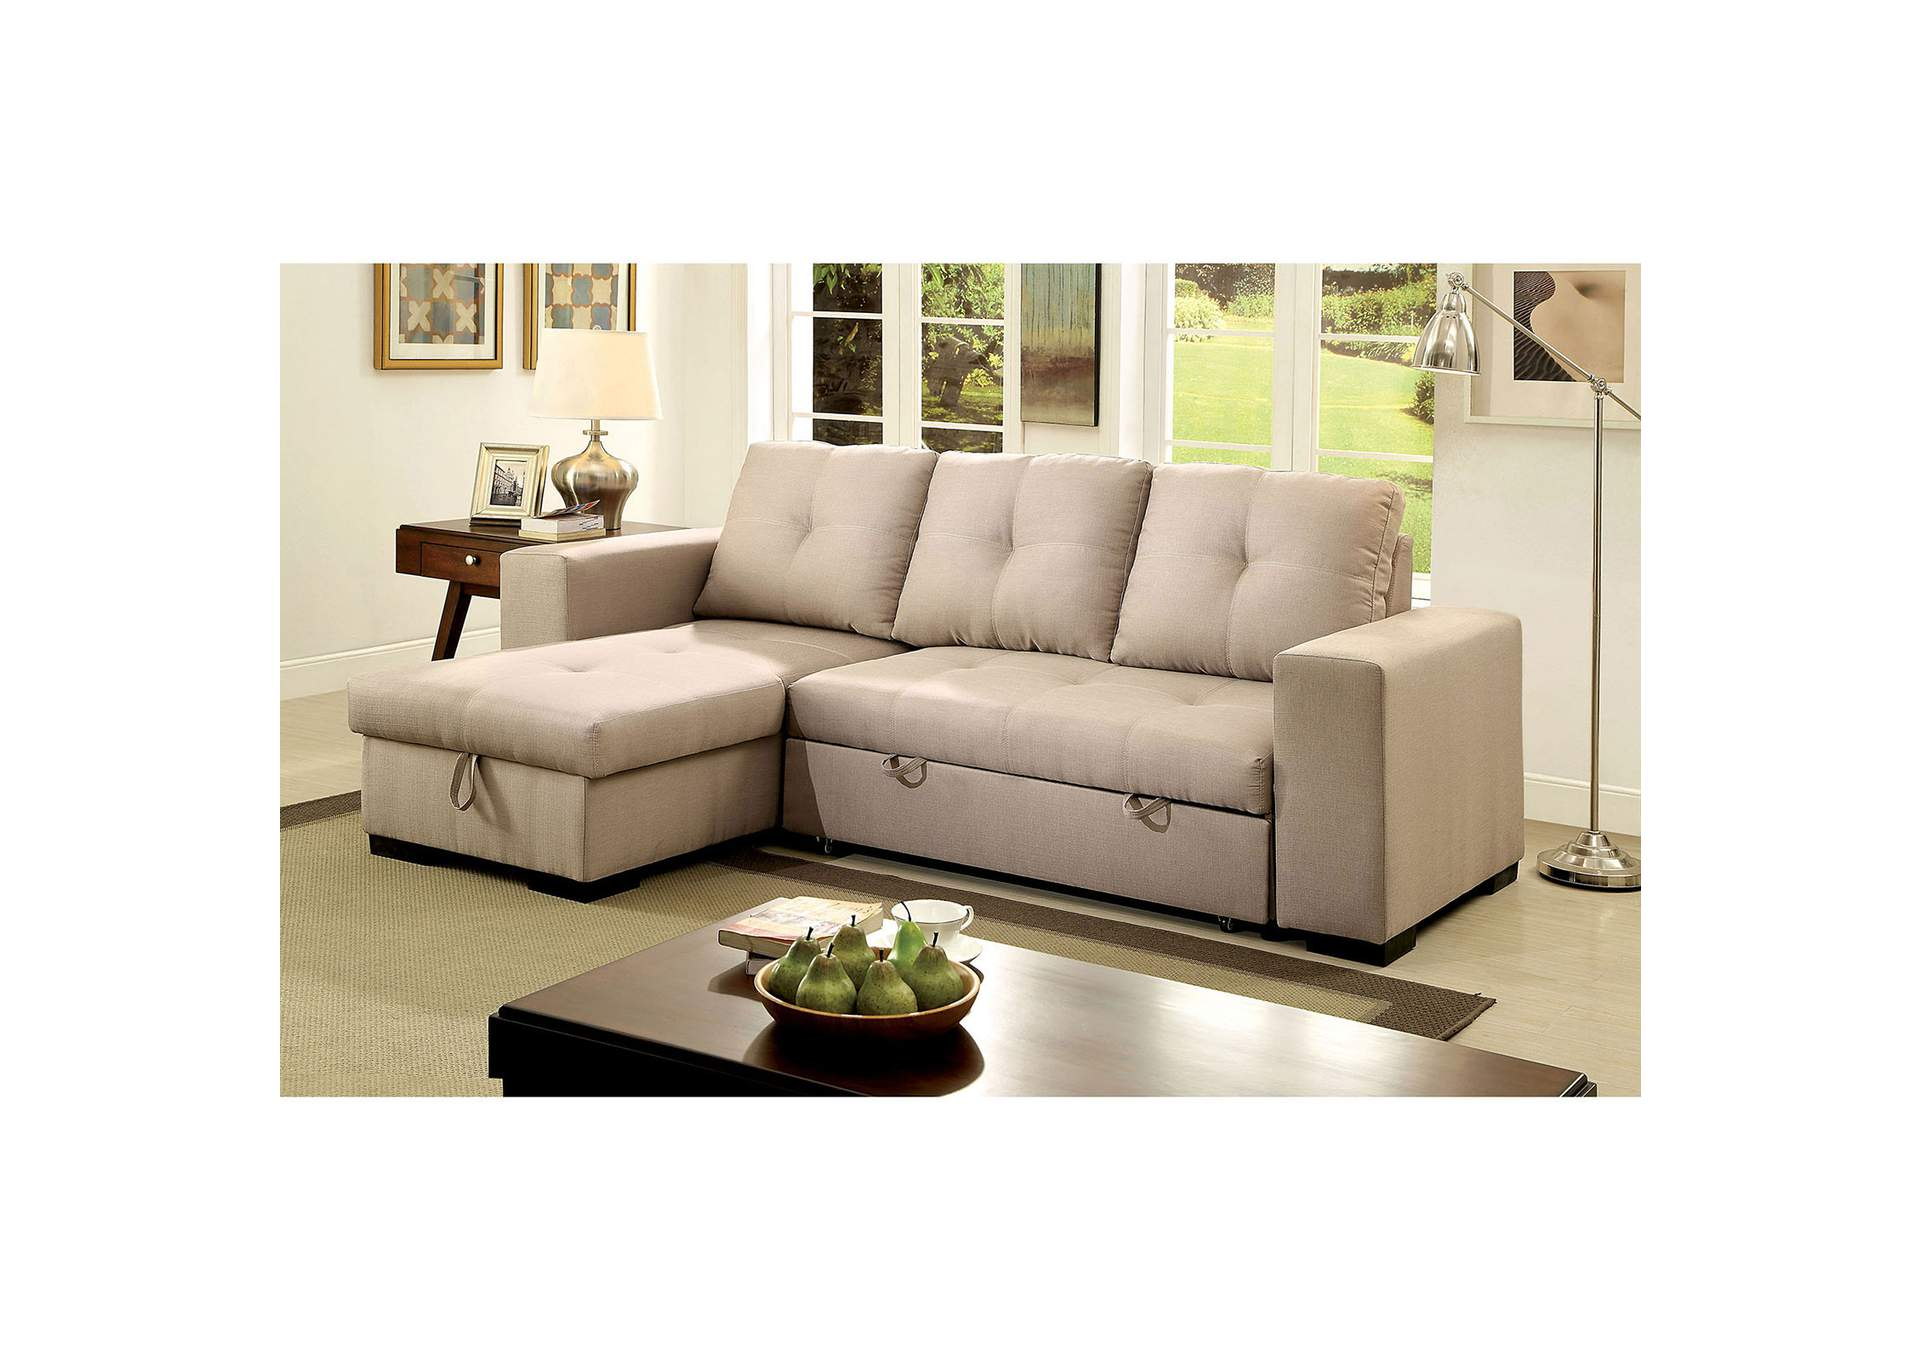 Denton Ivory Sectional,Furniture of America